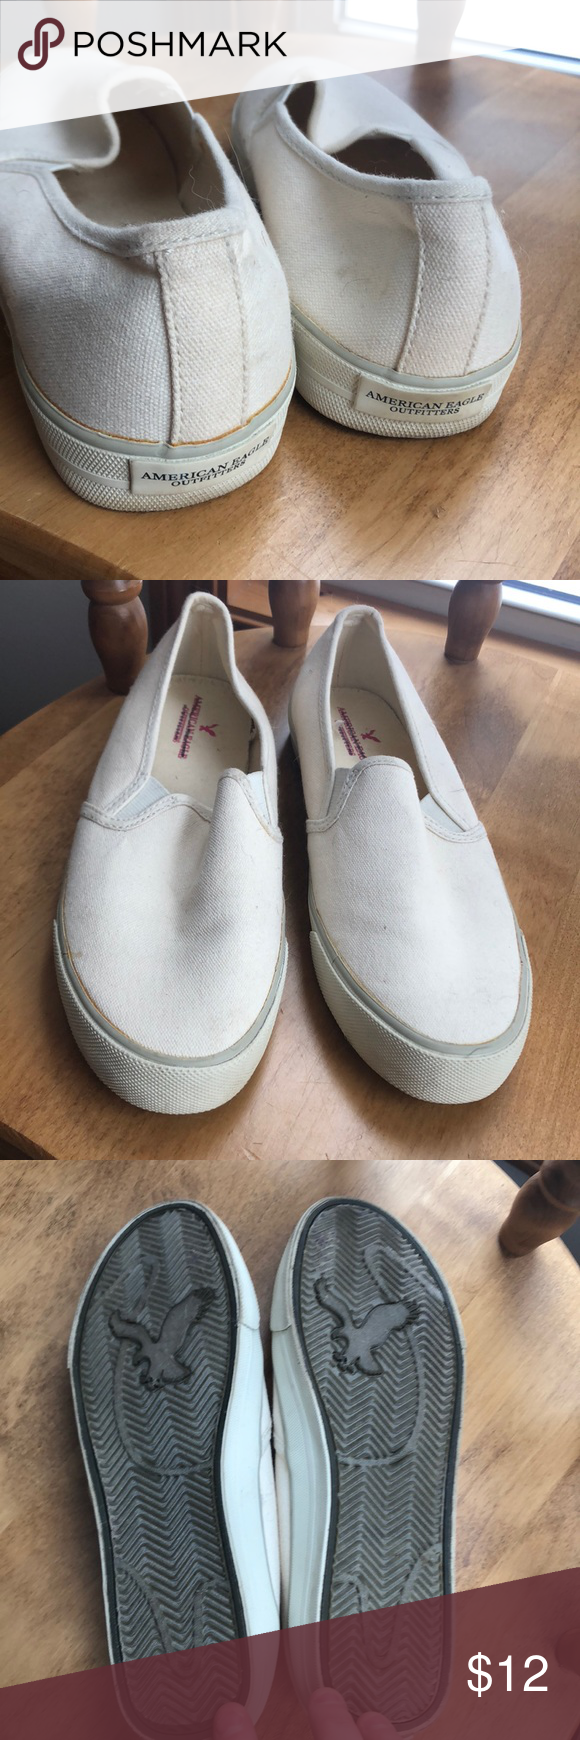 American Eagle Size 8 Cream Slip On Sneakers Colored The Insignia Is Crossed Out These As